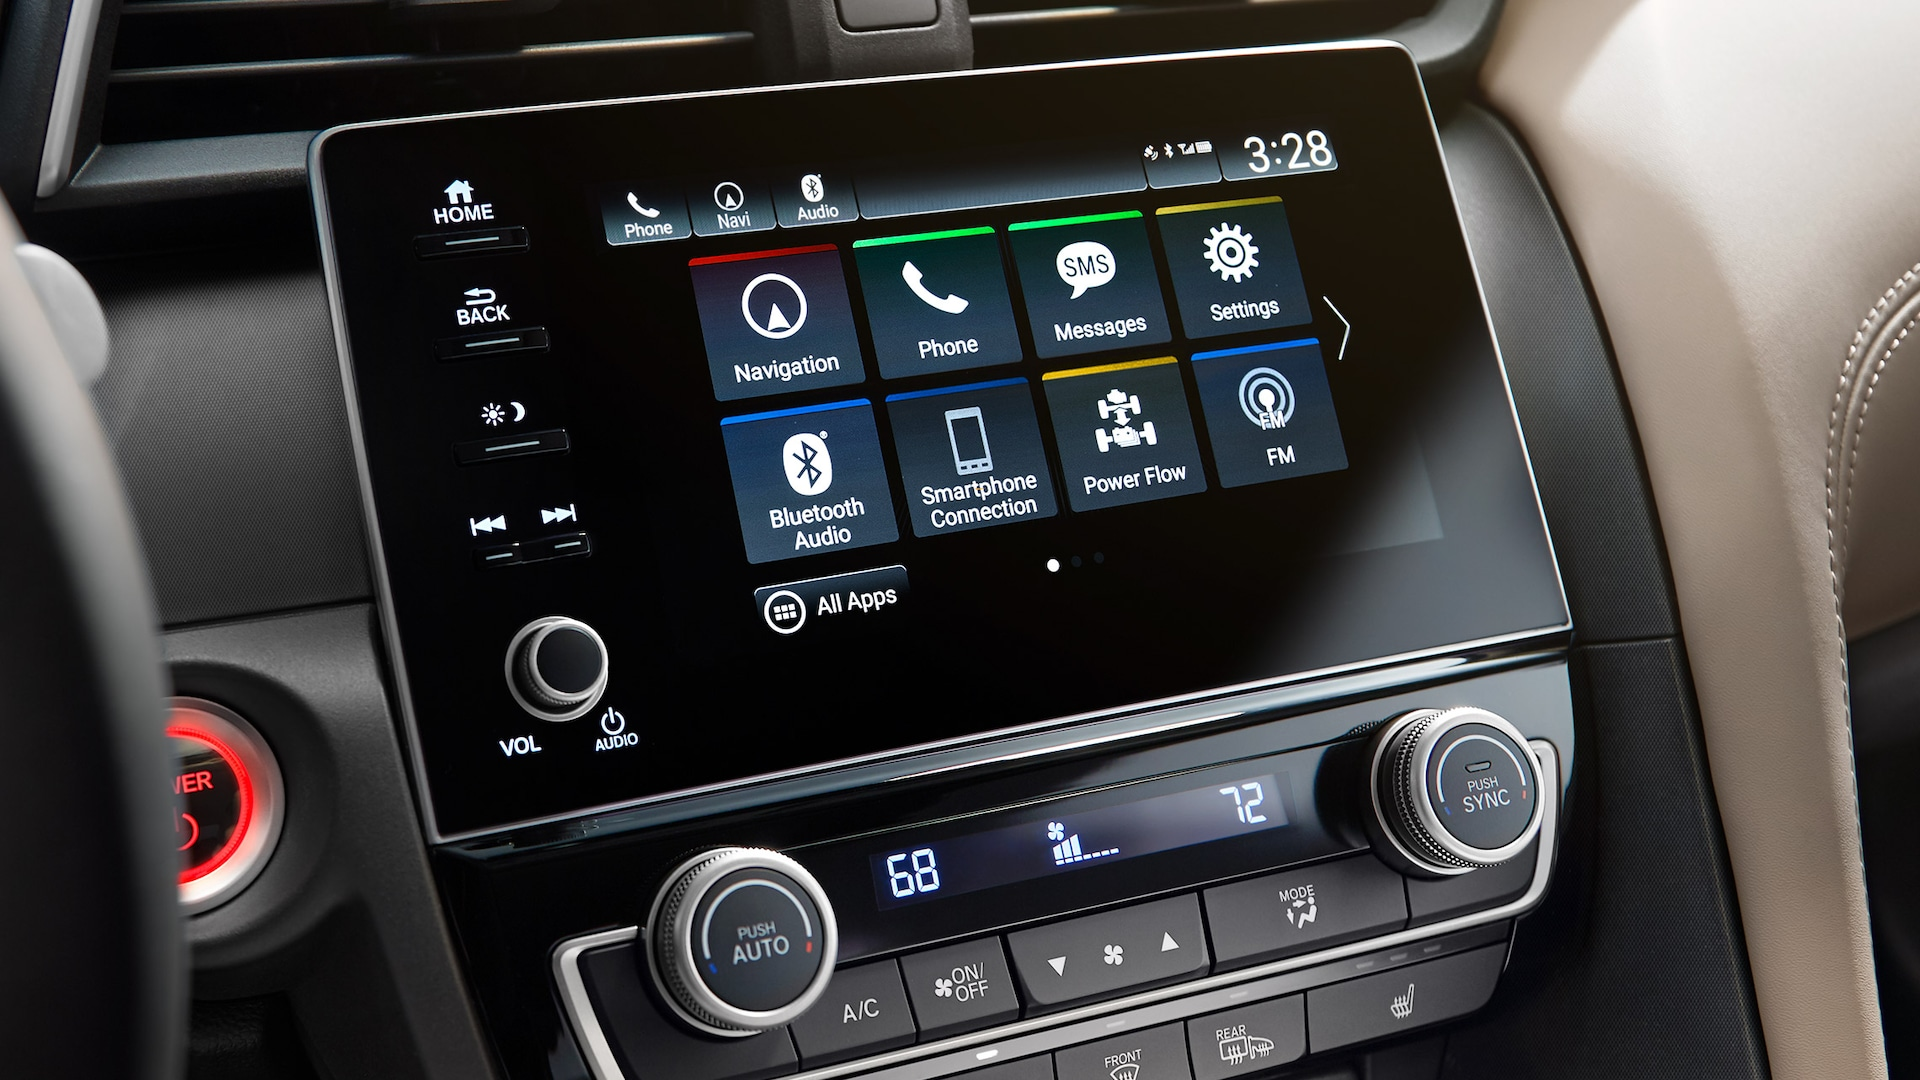 Display Audio touch-screen detail in 2020 Honda Insight.